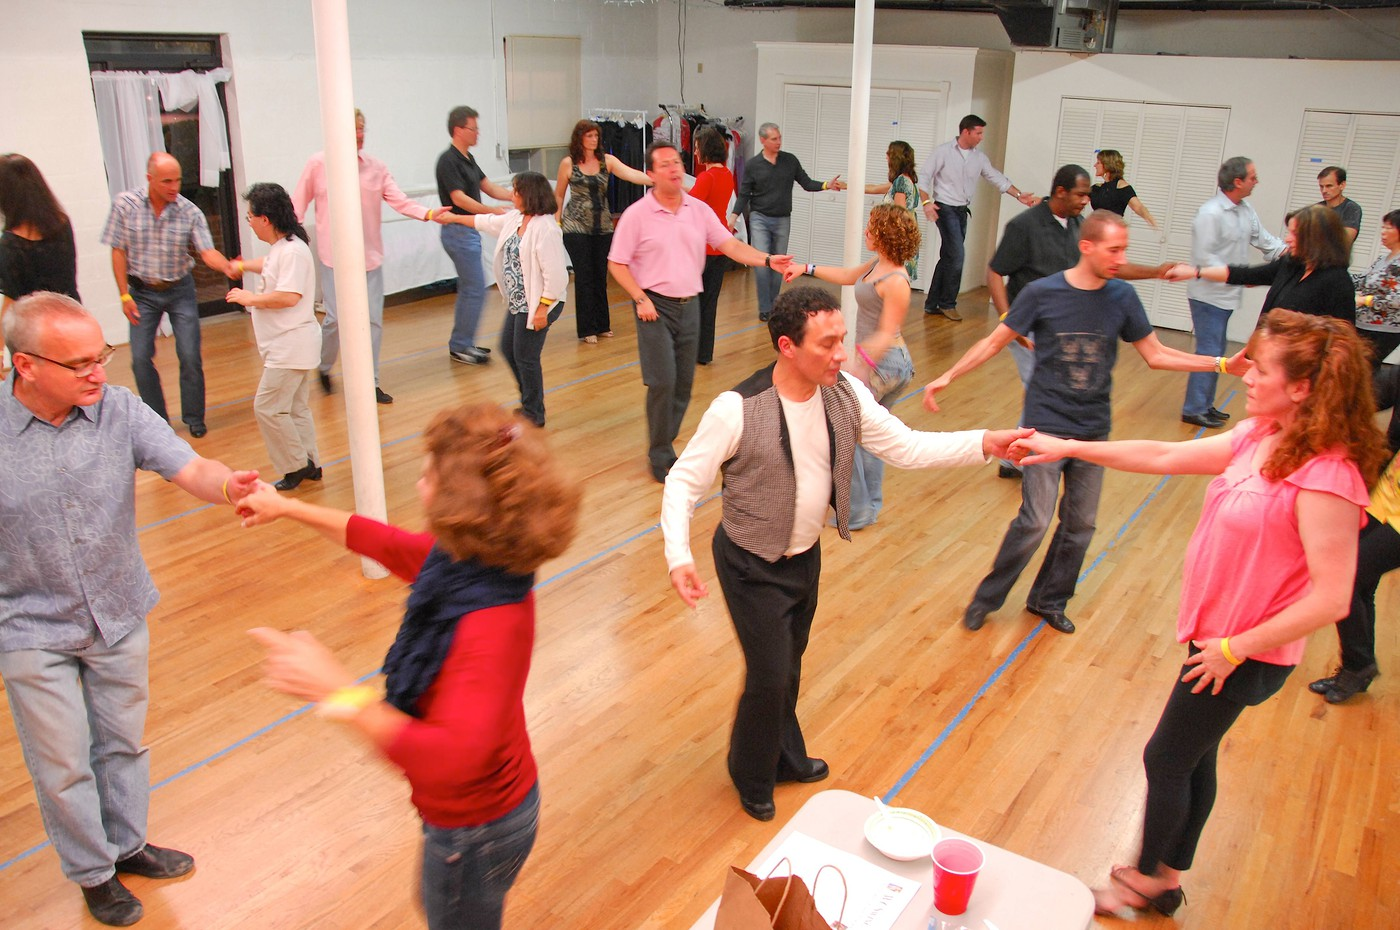 West Coast Swing workshops in Connecticut on Nov 6, 2011